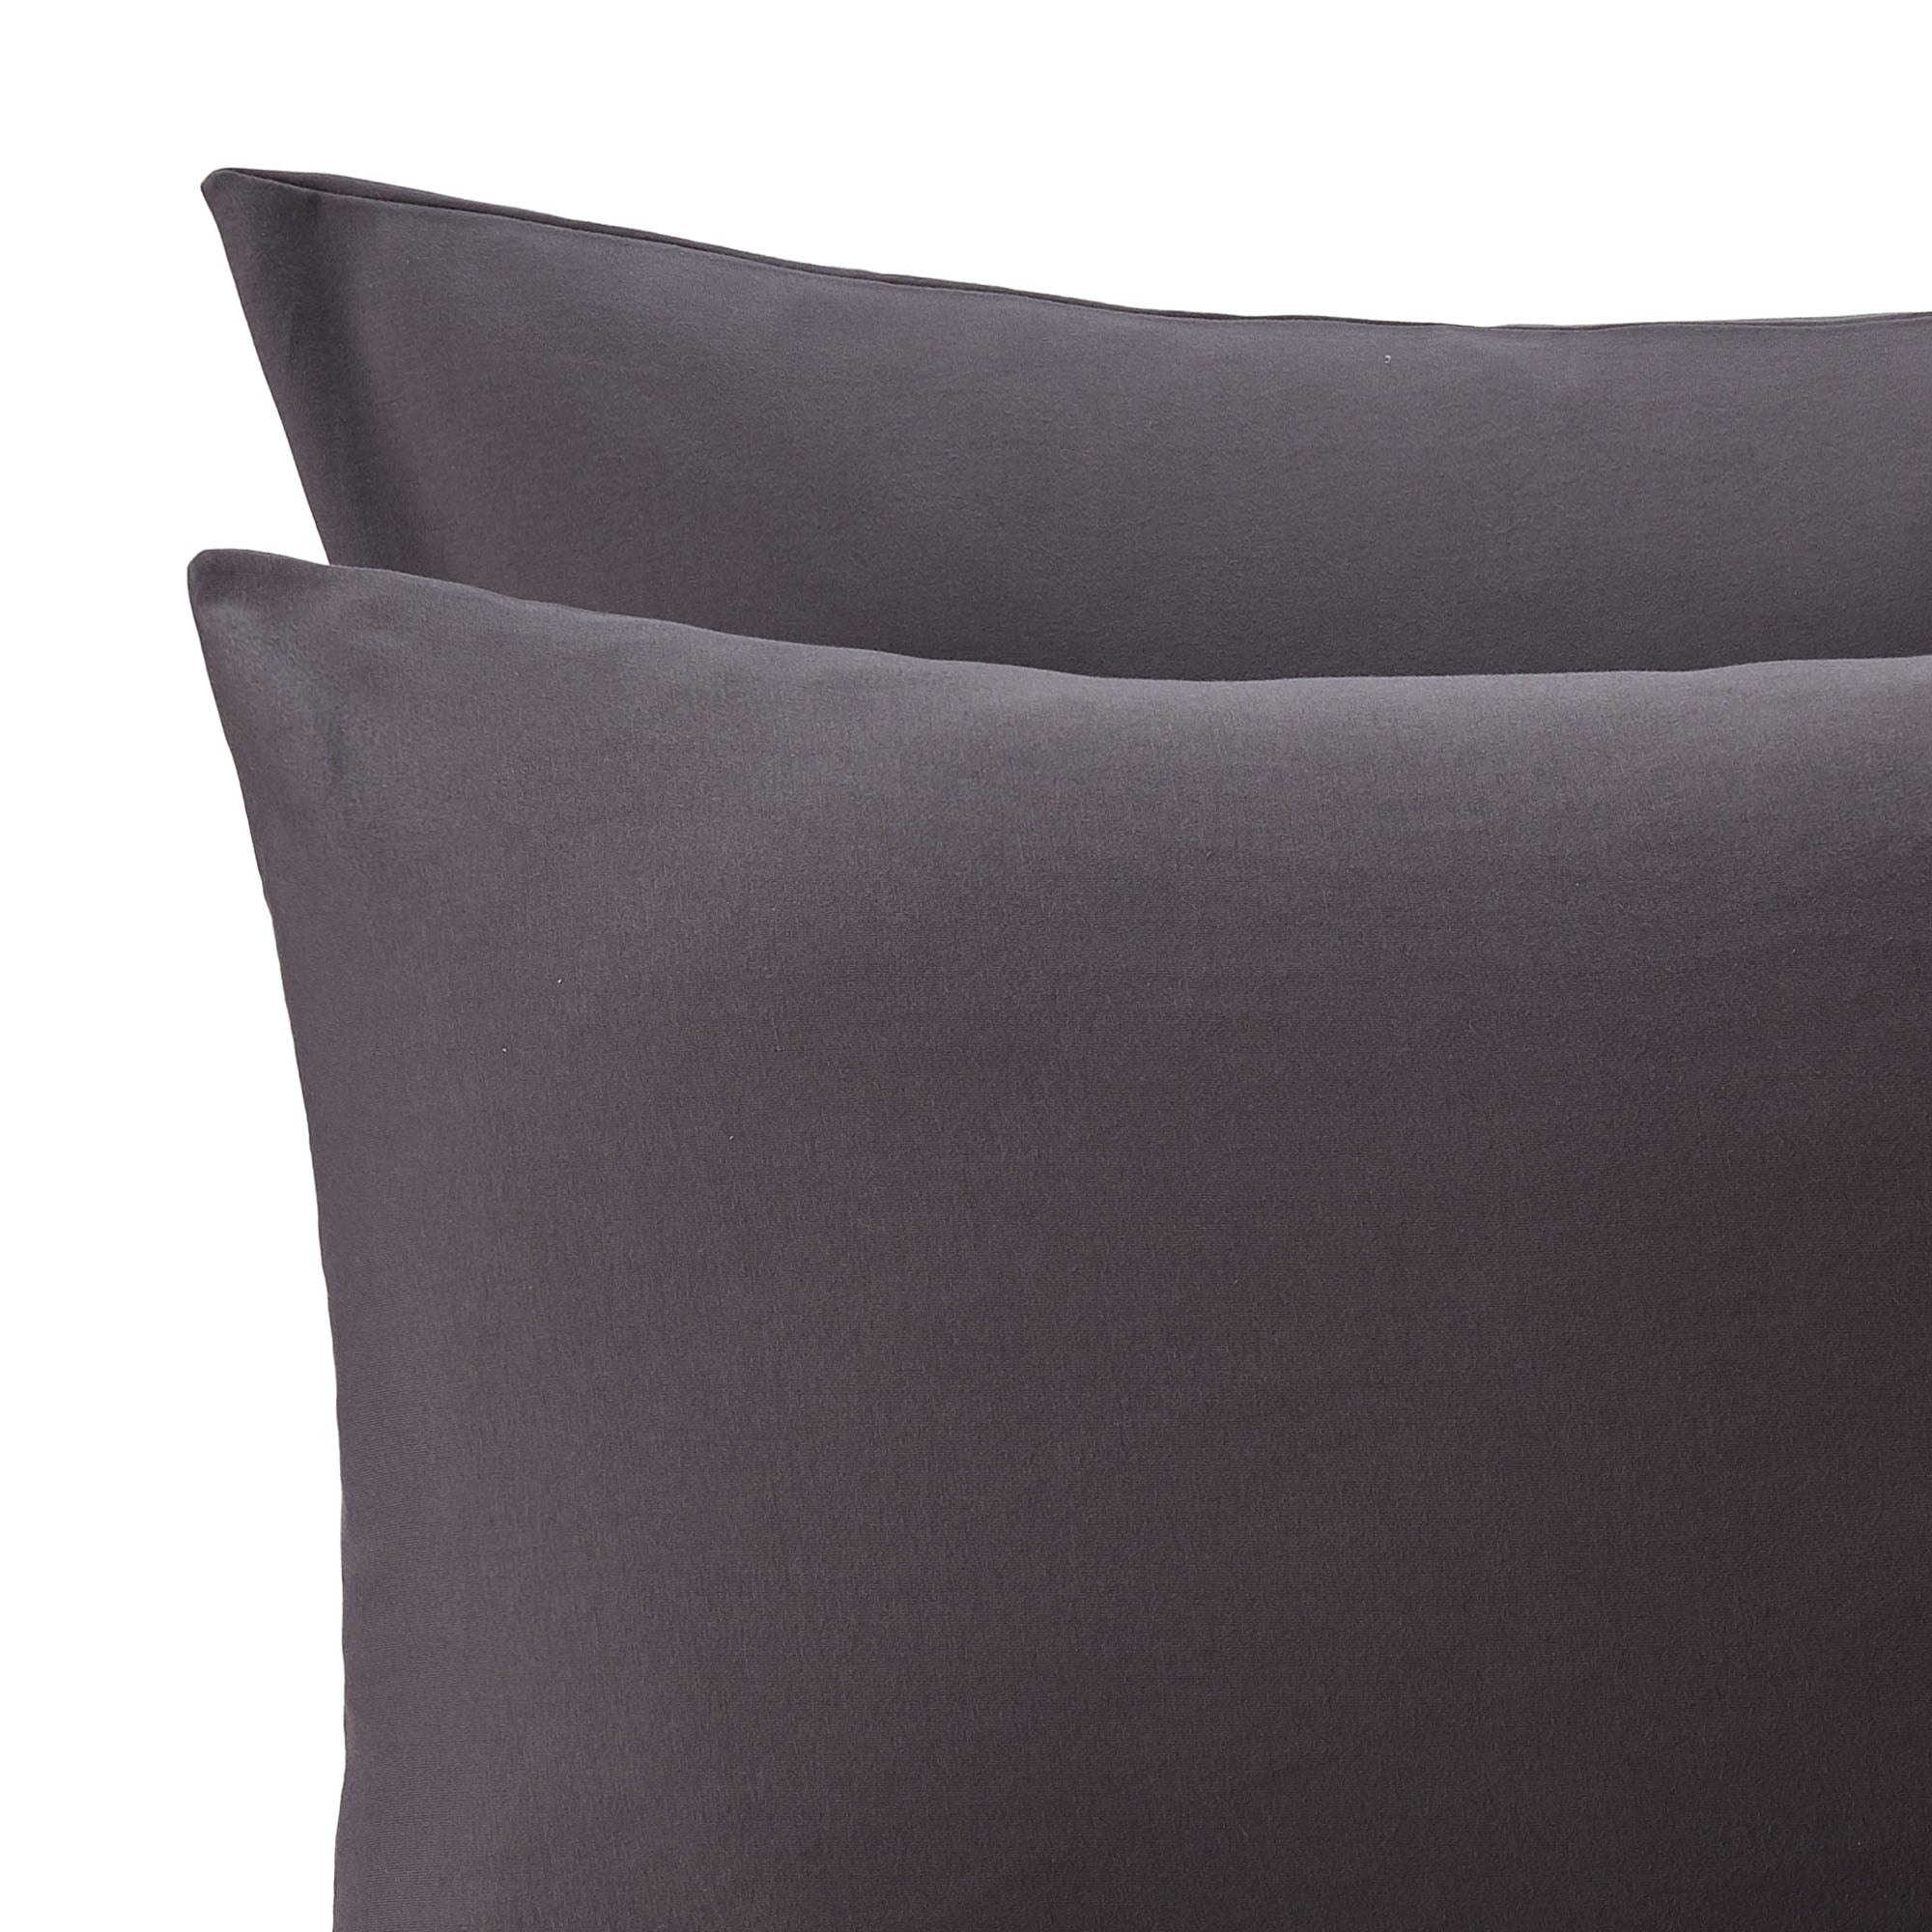 Samares Bed Linen [Charcoal]